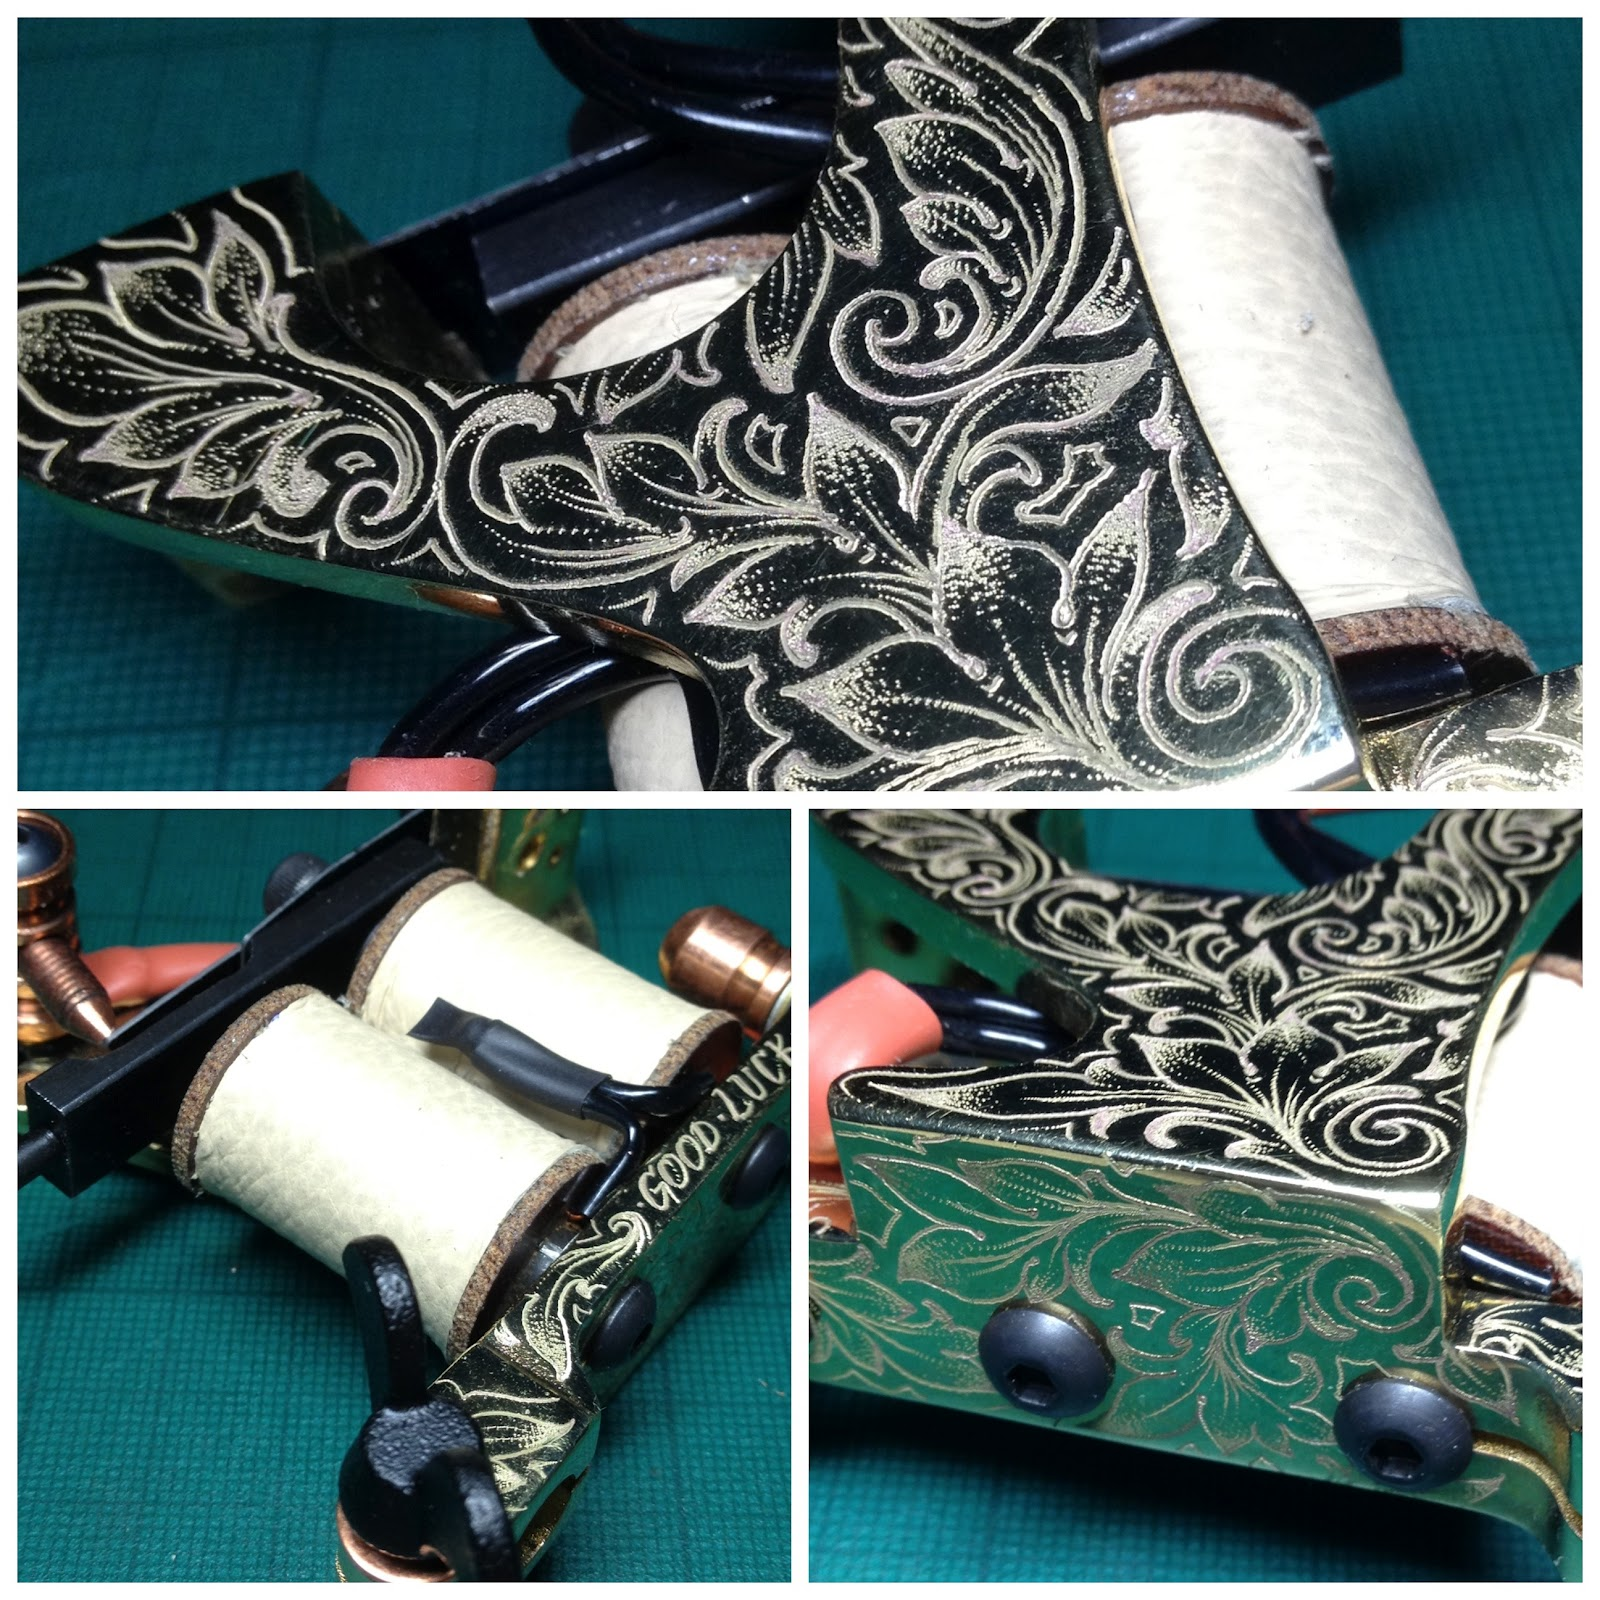 Royal machinery latest engravings and builds for How much does a tattoo gun cost